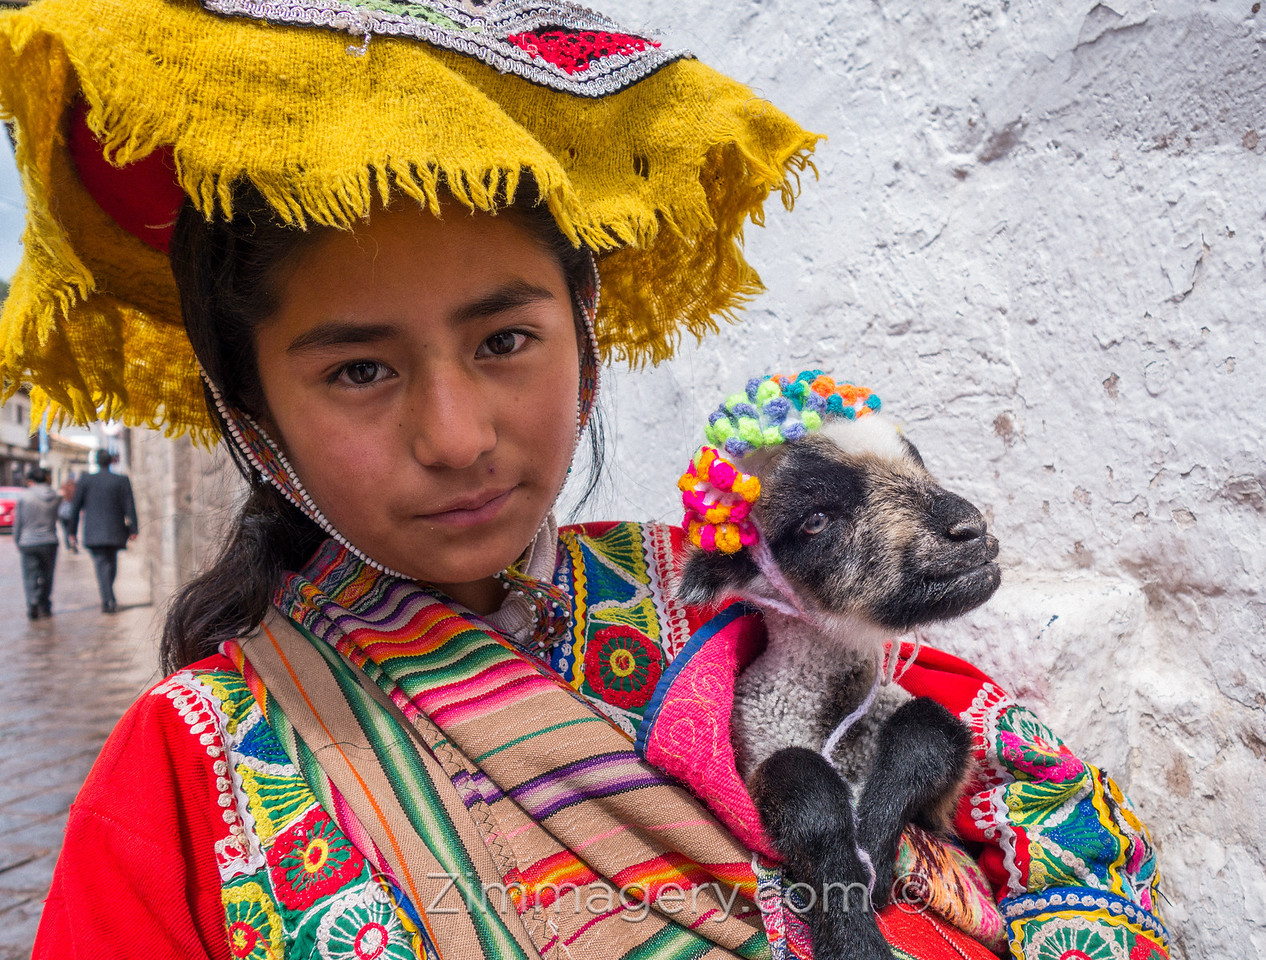 Young Girl with Baby Goat, Cusco, Peru